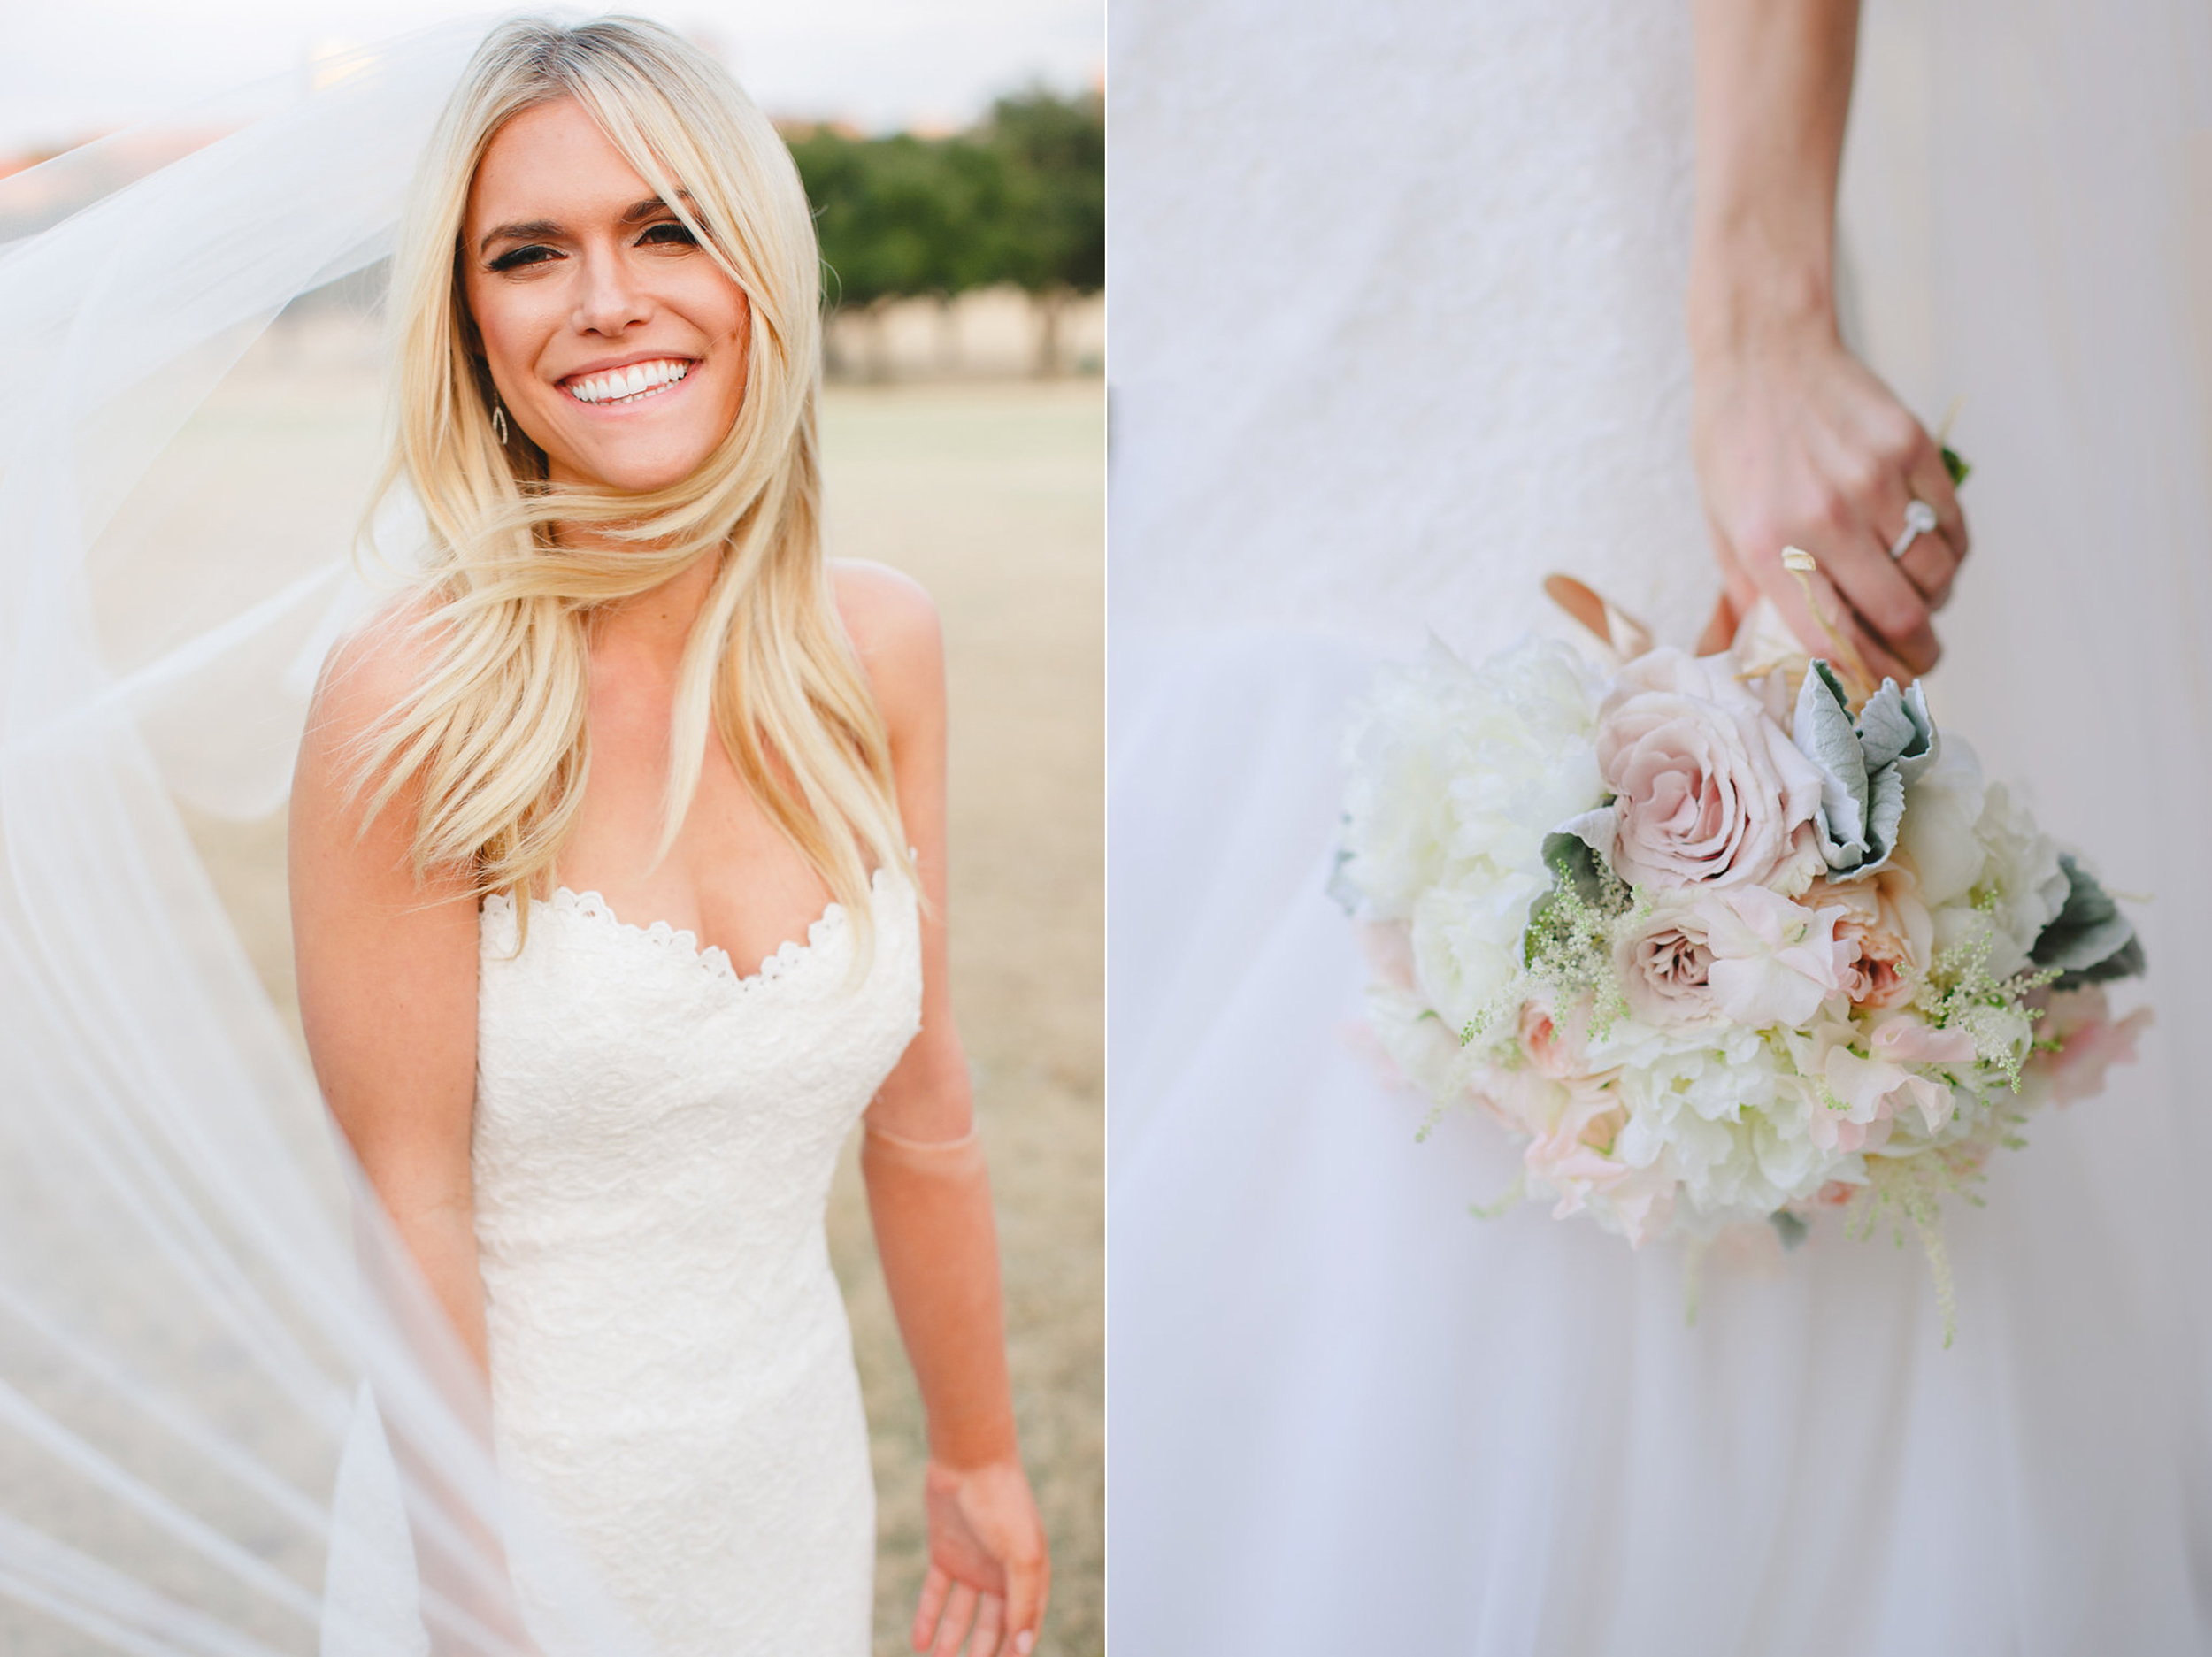 JasonKennedy.LaurenScruggs.DallasWedding26A.jpg